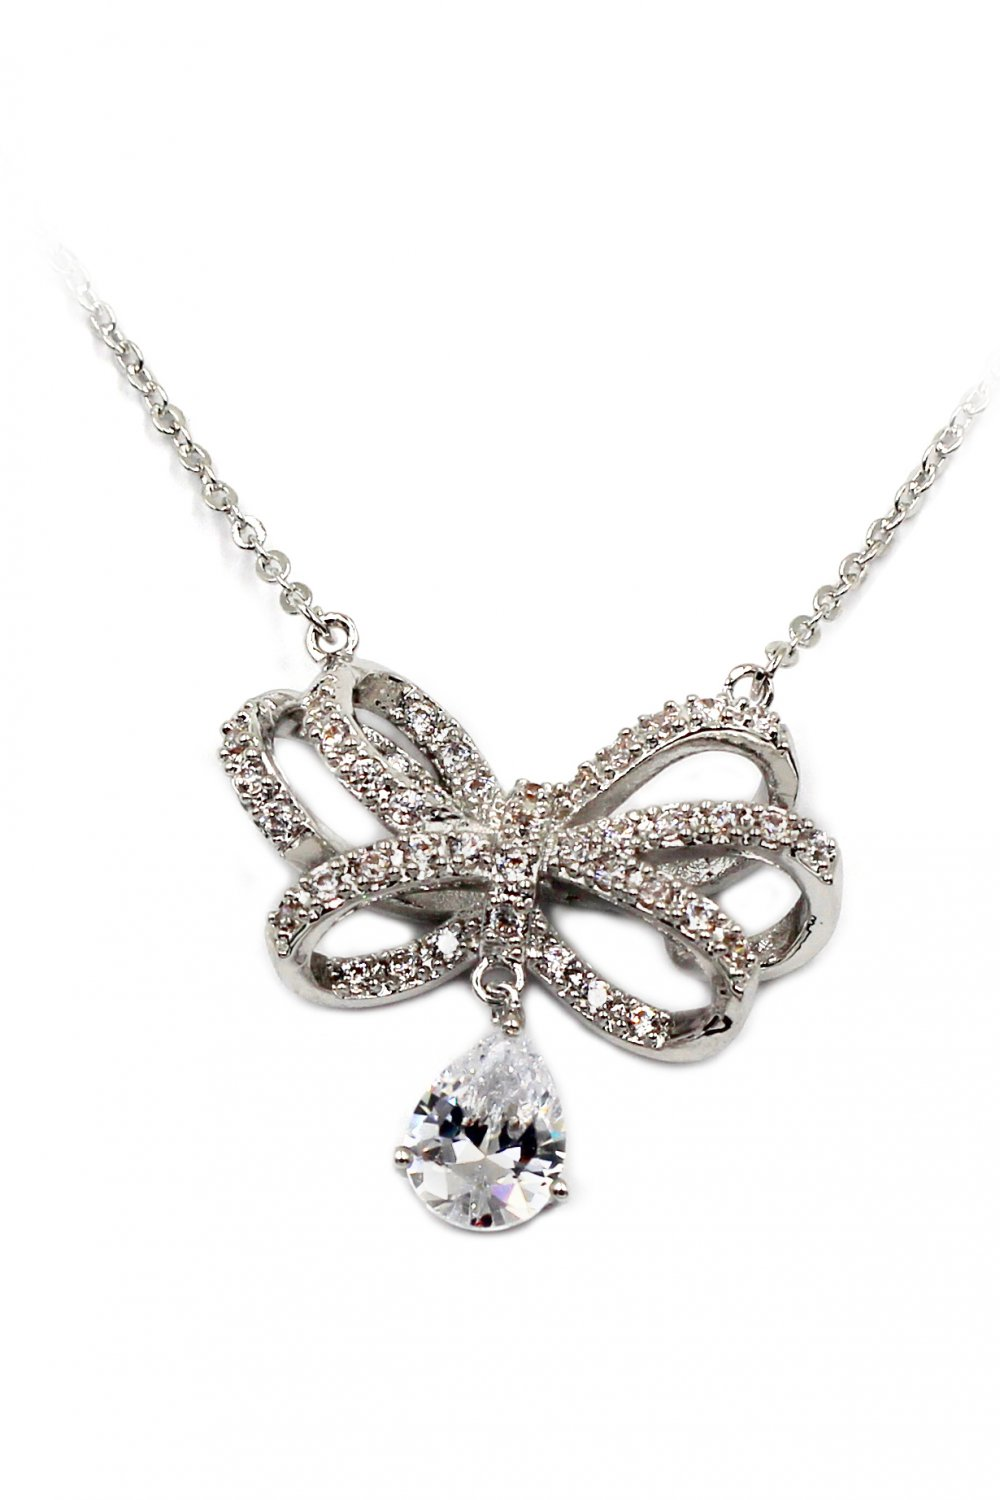 Noble bowknot crystal pendant silver necklace